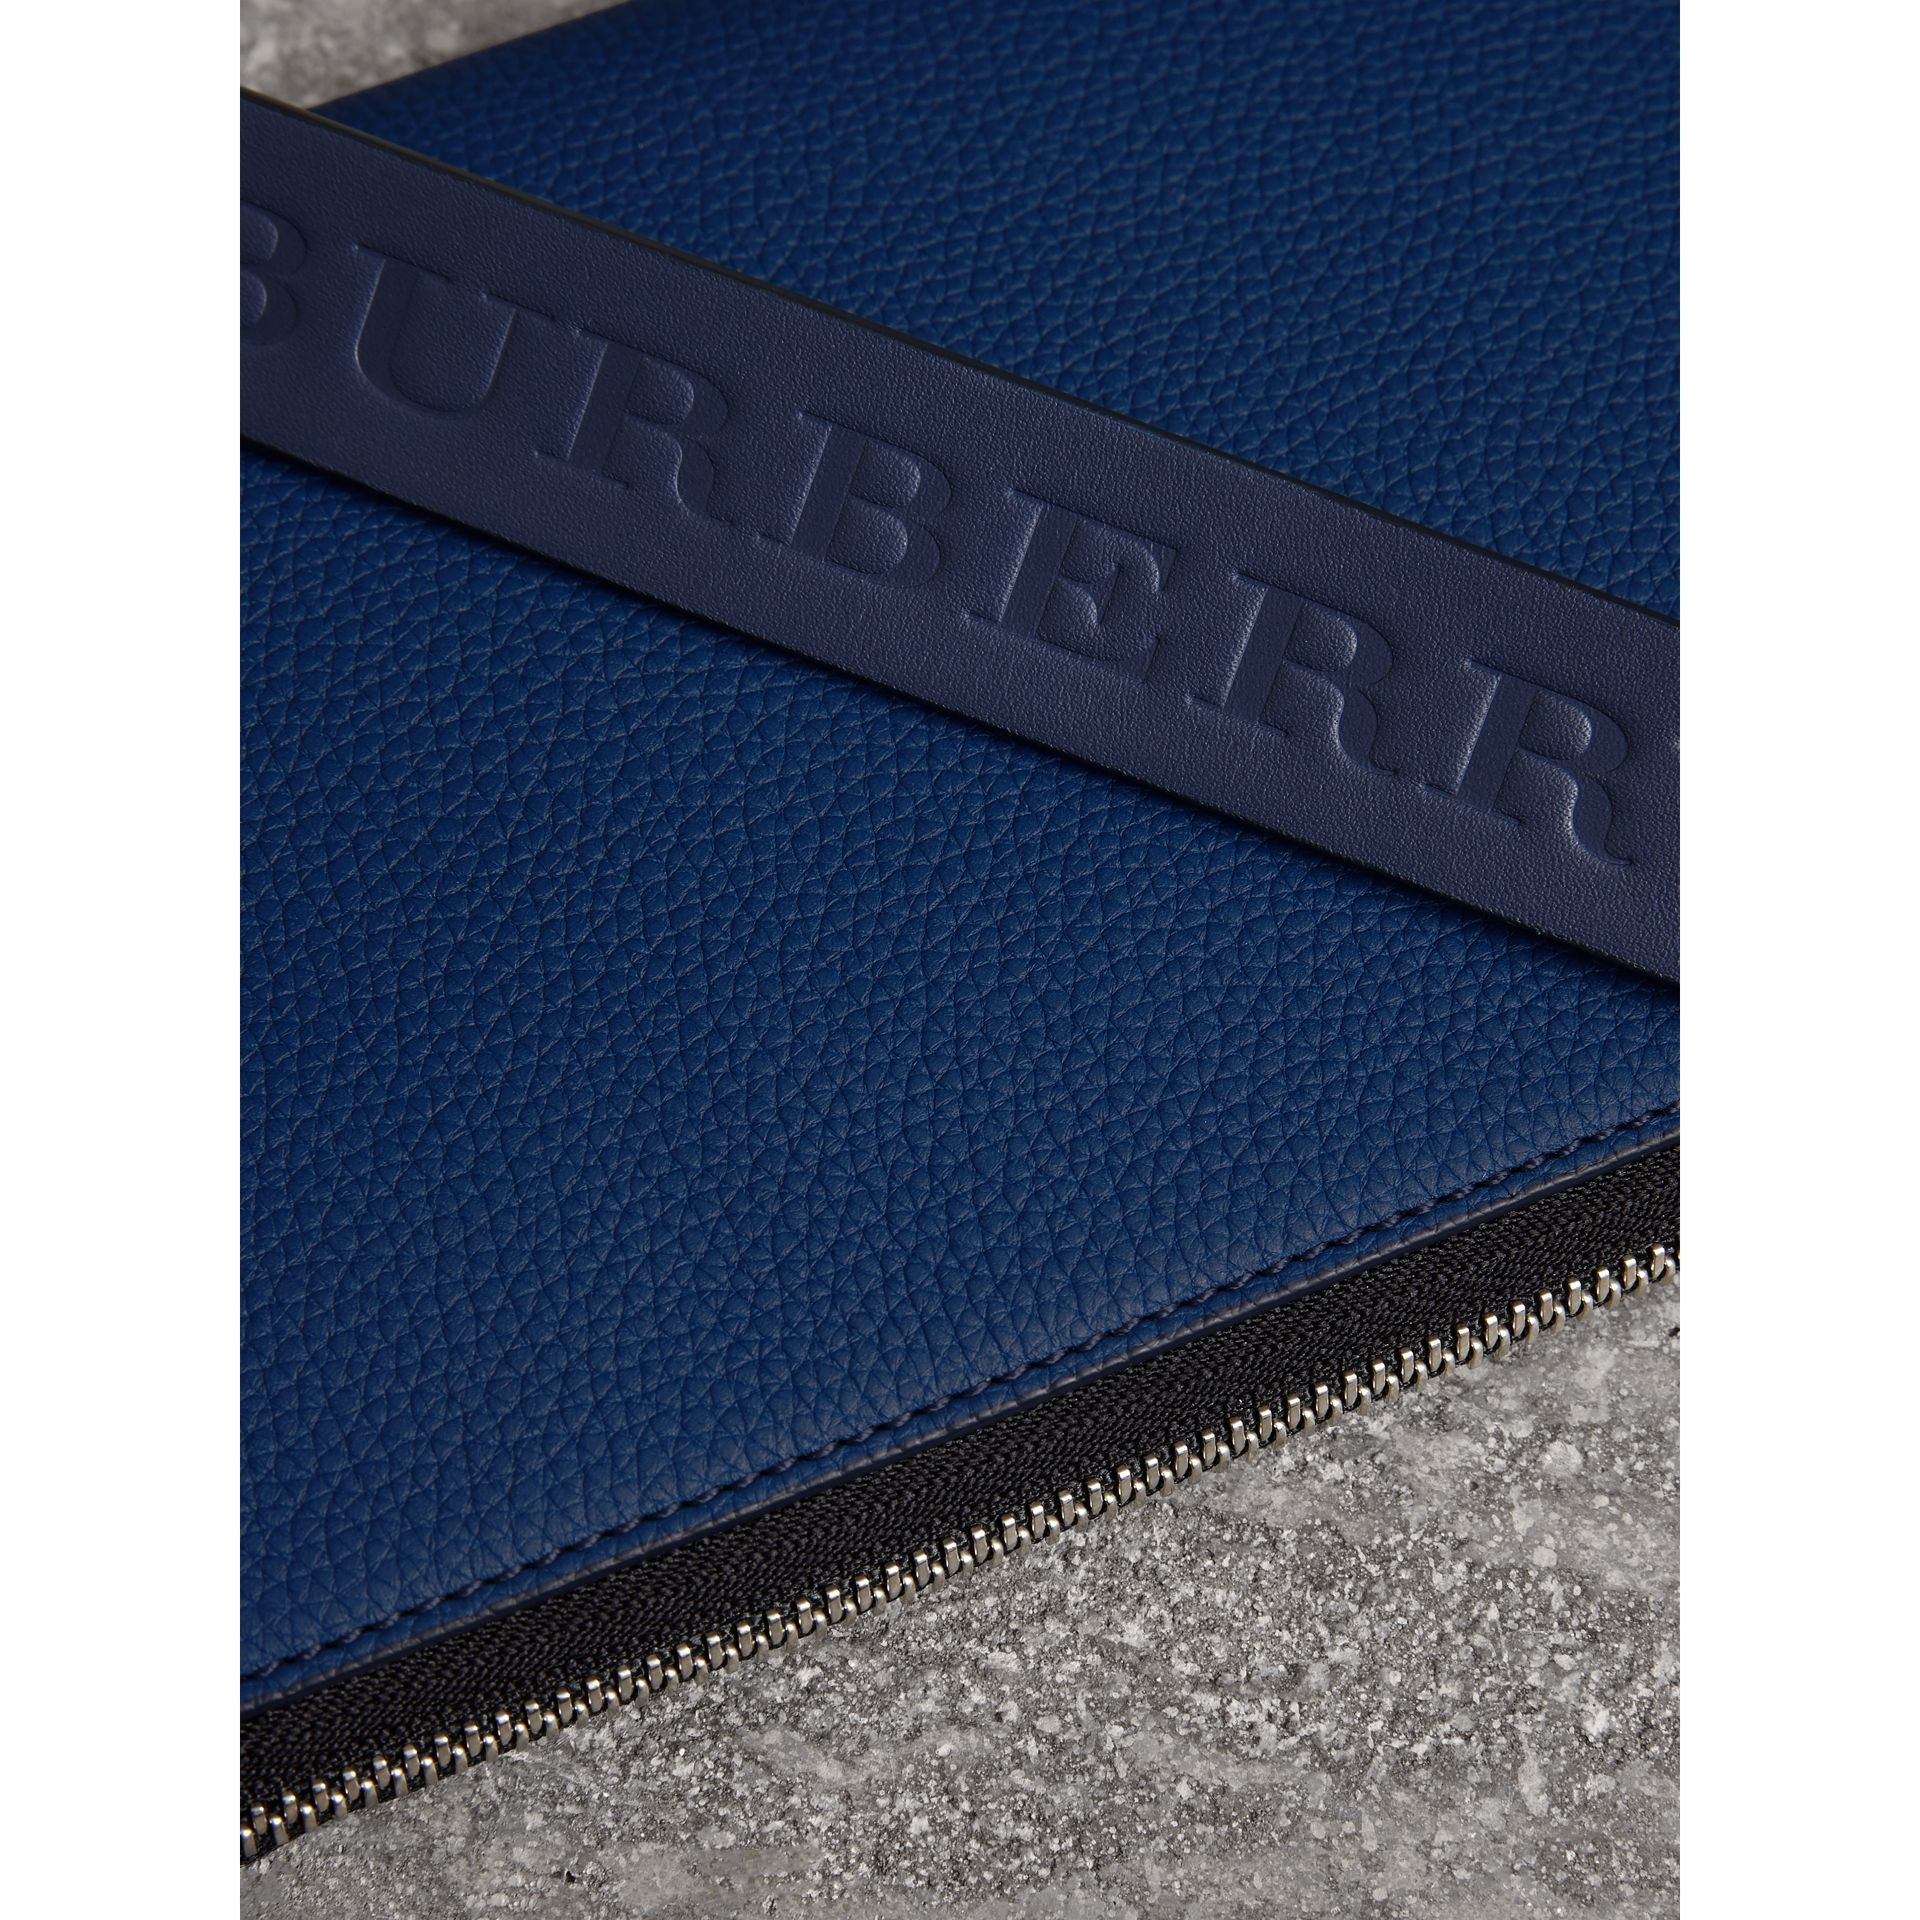 Two-tone Grainy Leather Travel Wallet in Bright Ultramarine - Men | Burberry Hong Kong - gallery image 1